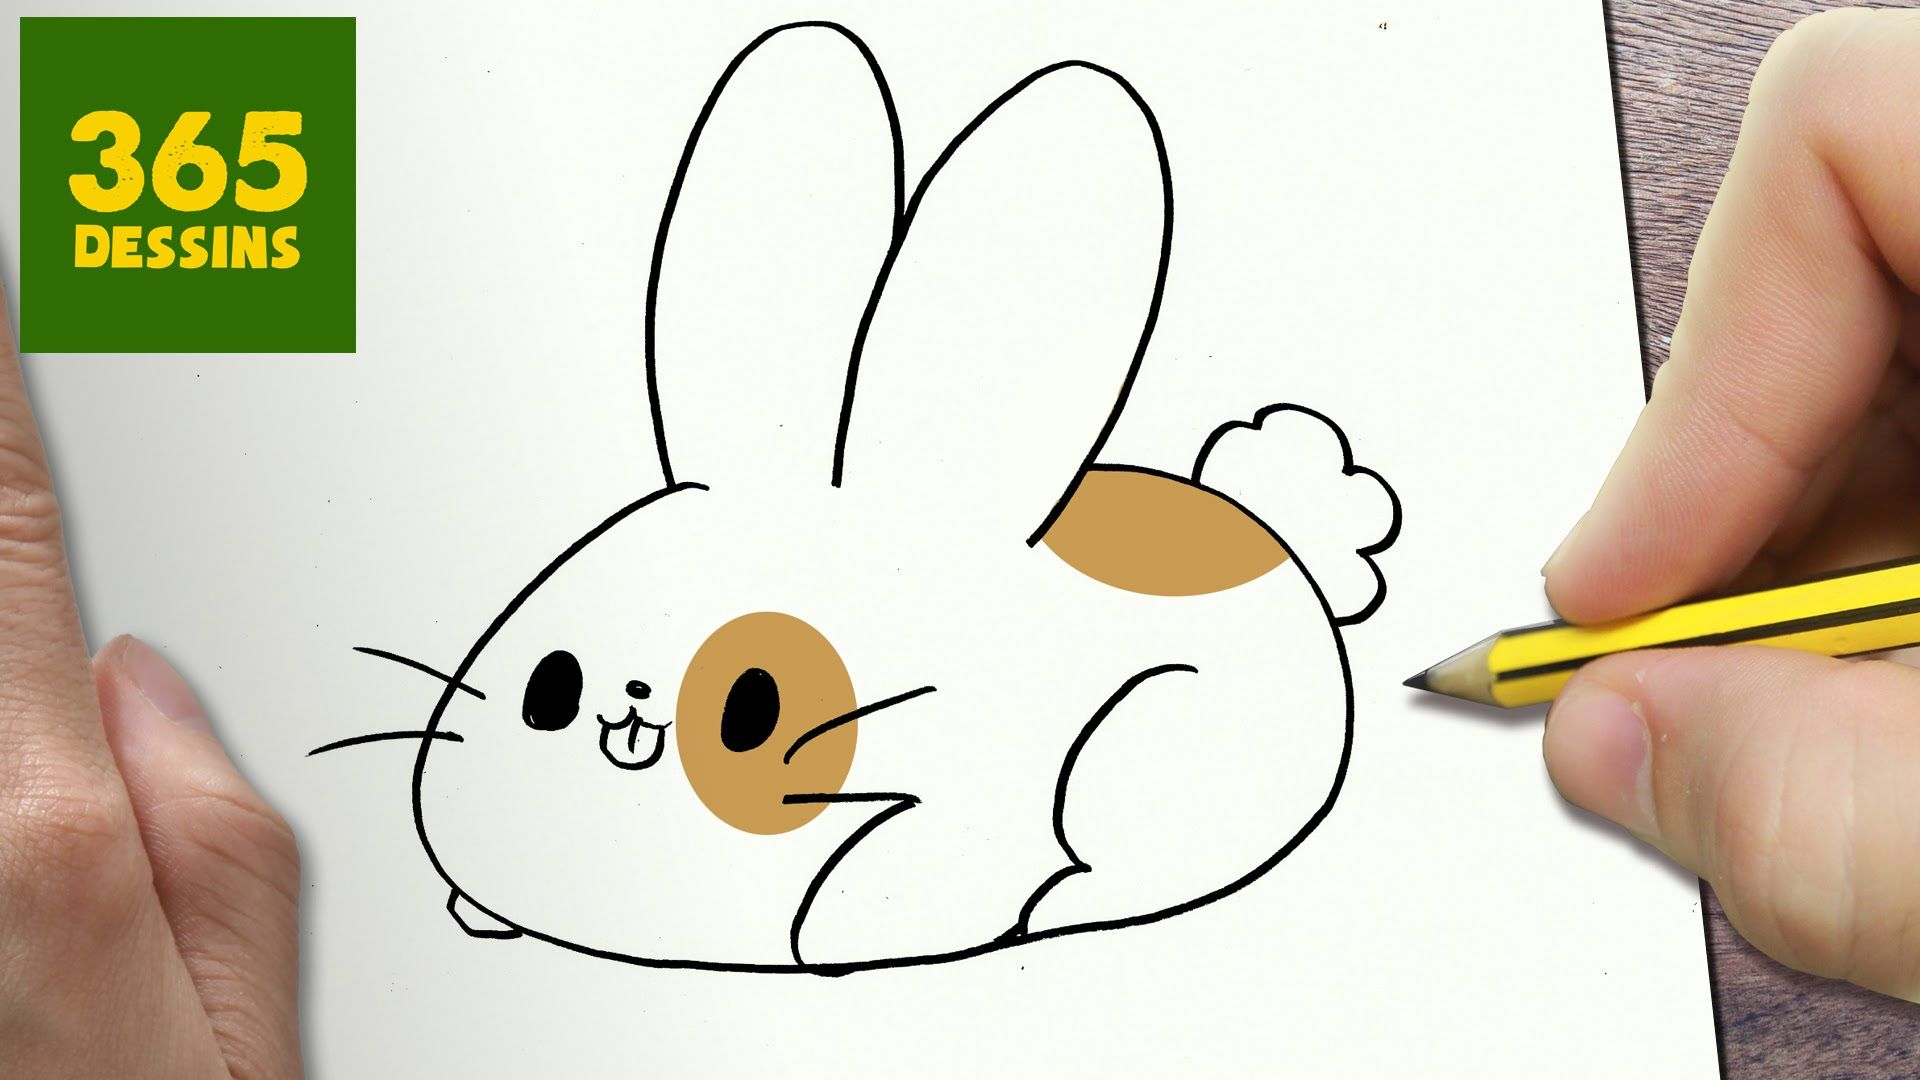 Comment Dessiner Lapin Kawaii Etape Par Etape Dessins Kawaii